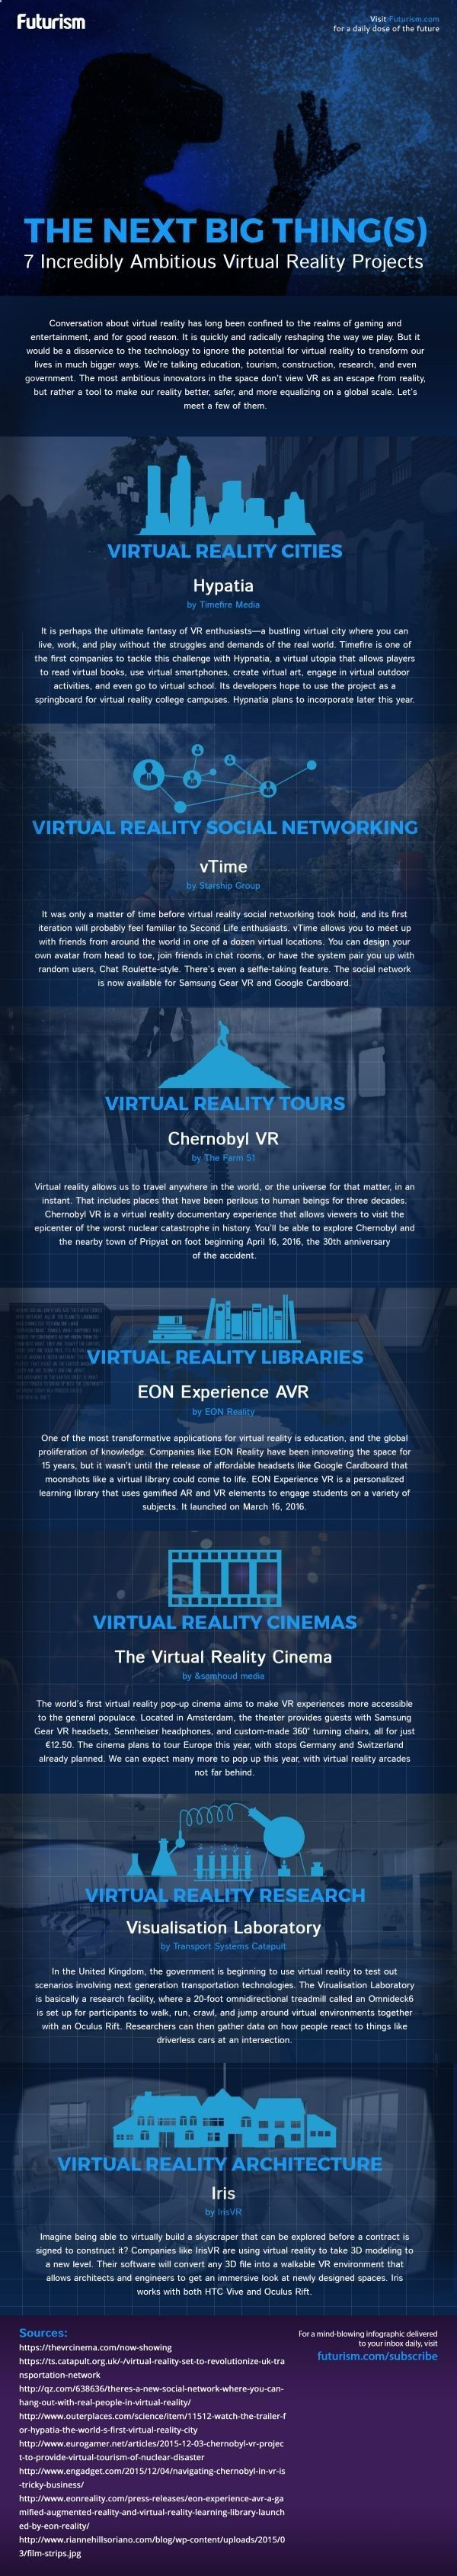 Virtual Reality Glasses - the next big things in virtual reality infographic This Wednesday, October 11, the virtual reality company of Facebook Oculus Connect , announced during its annual event some interesting news that come to innovate in the world of virtual reality.